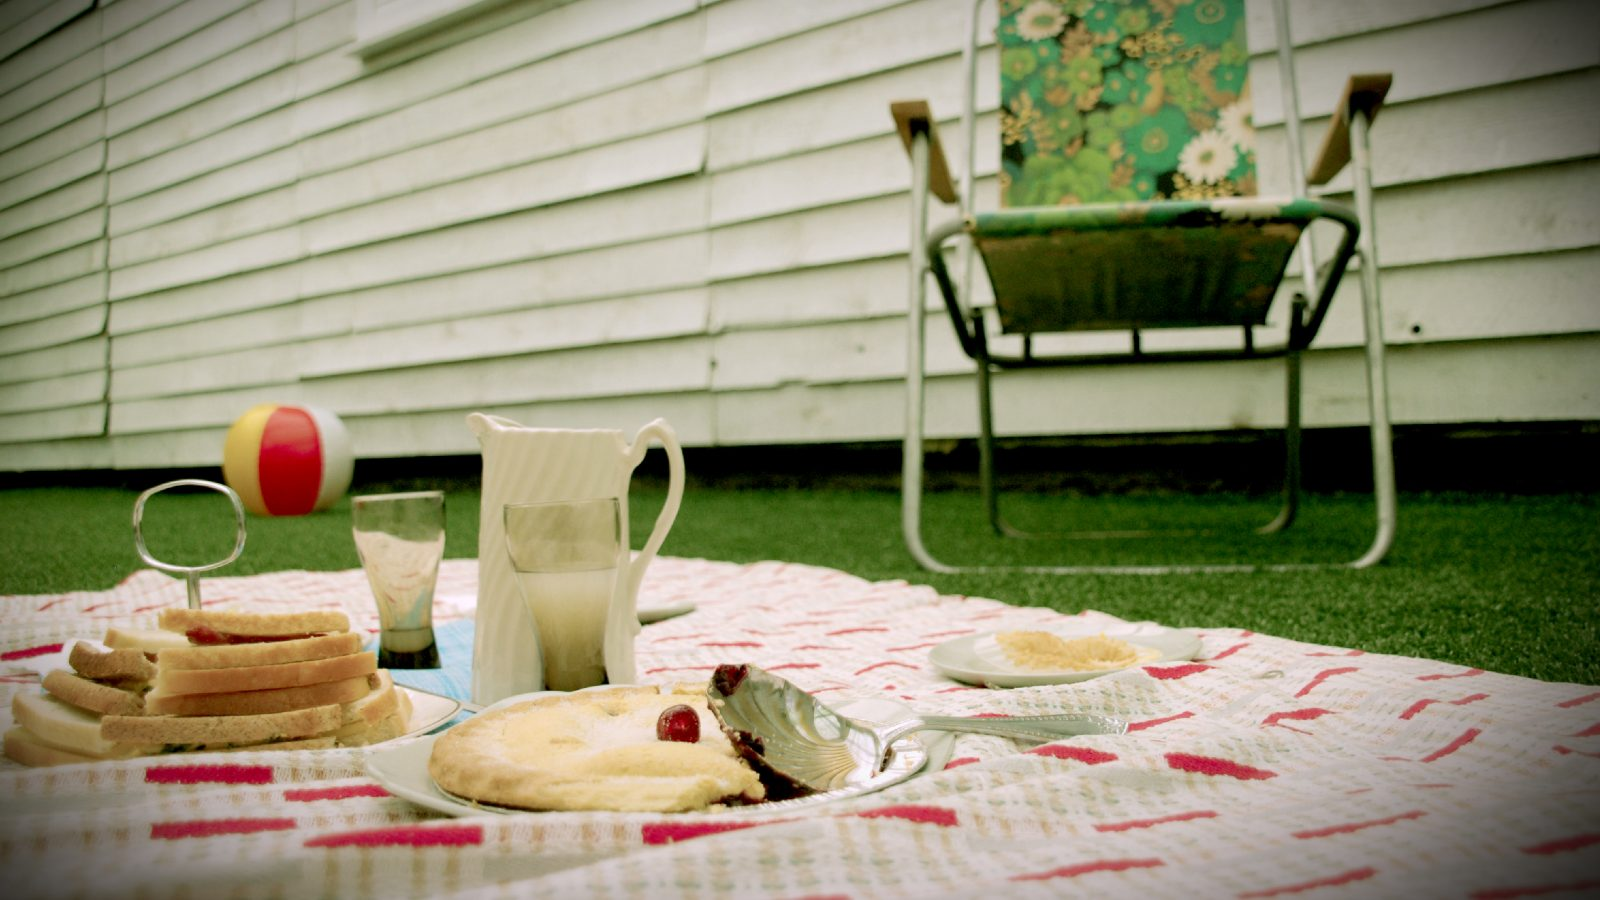 Picnic blanket, green grass and deckchair.